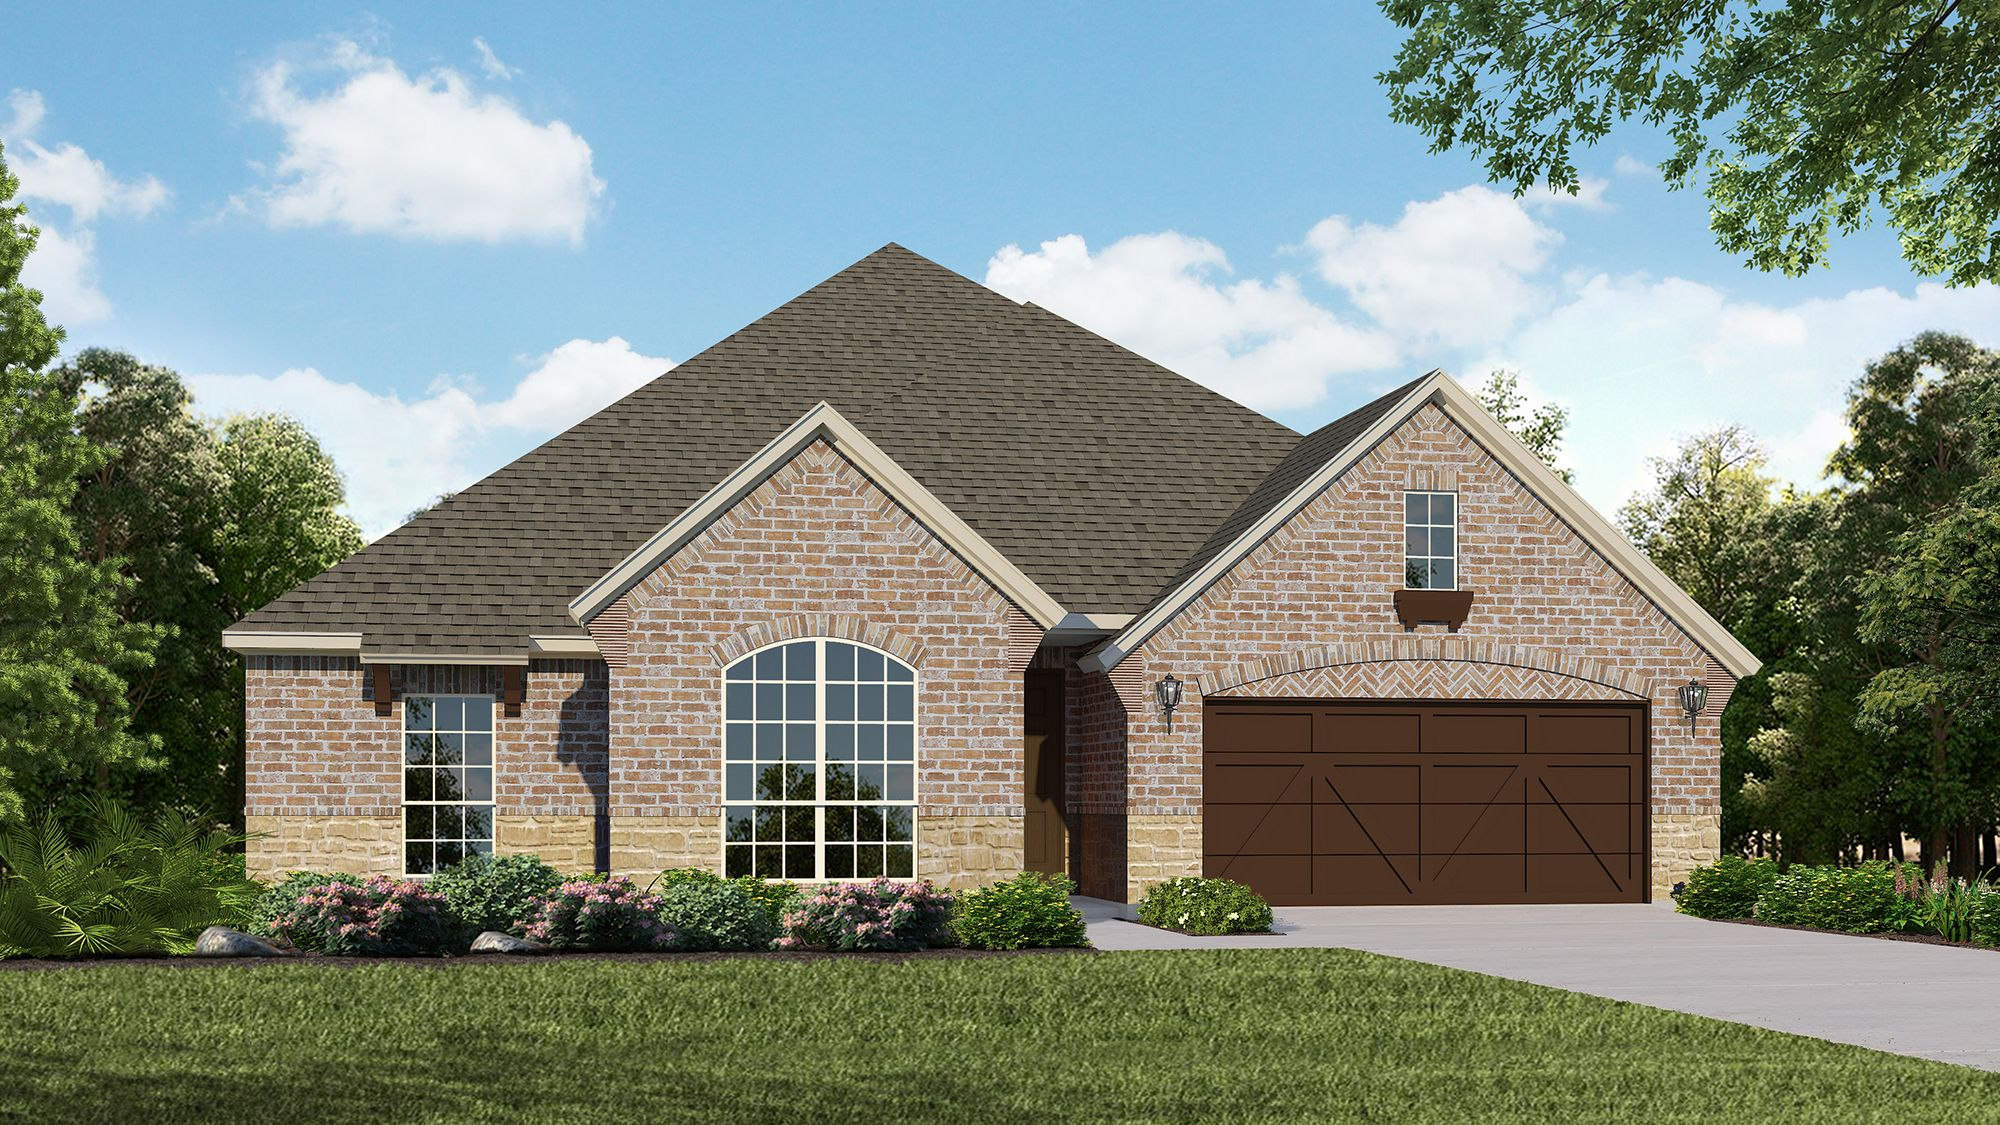 Plan 1606 Elevation A with Stone by American Legend Homes